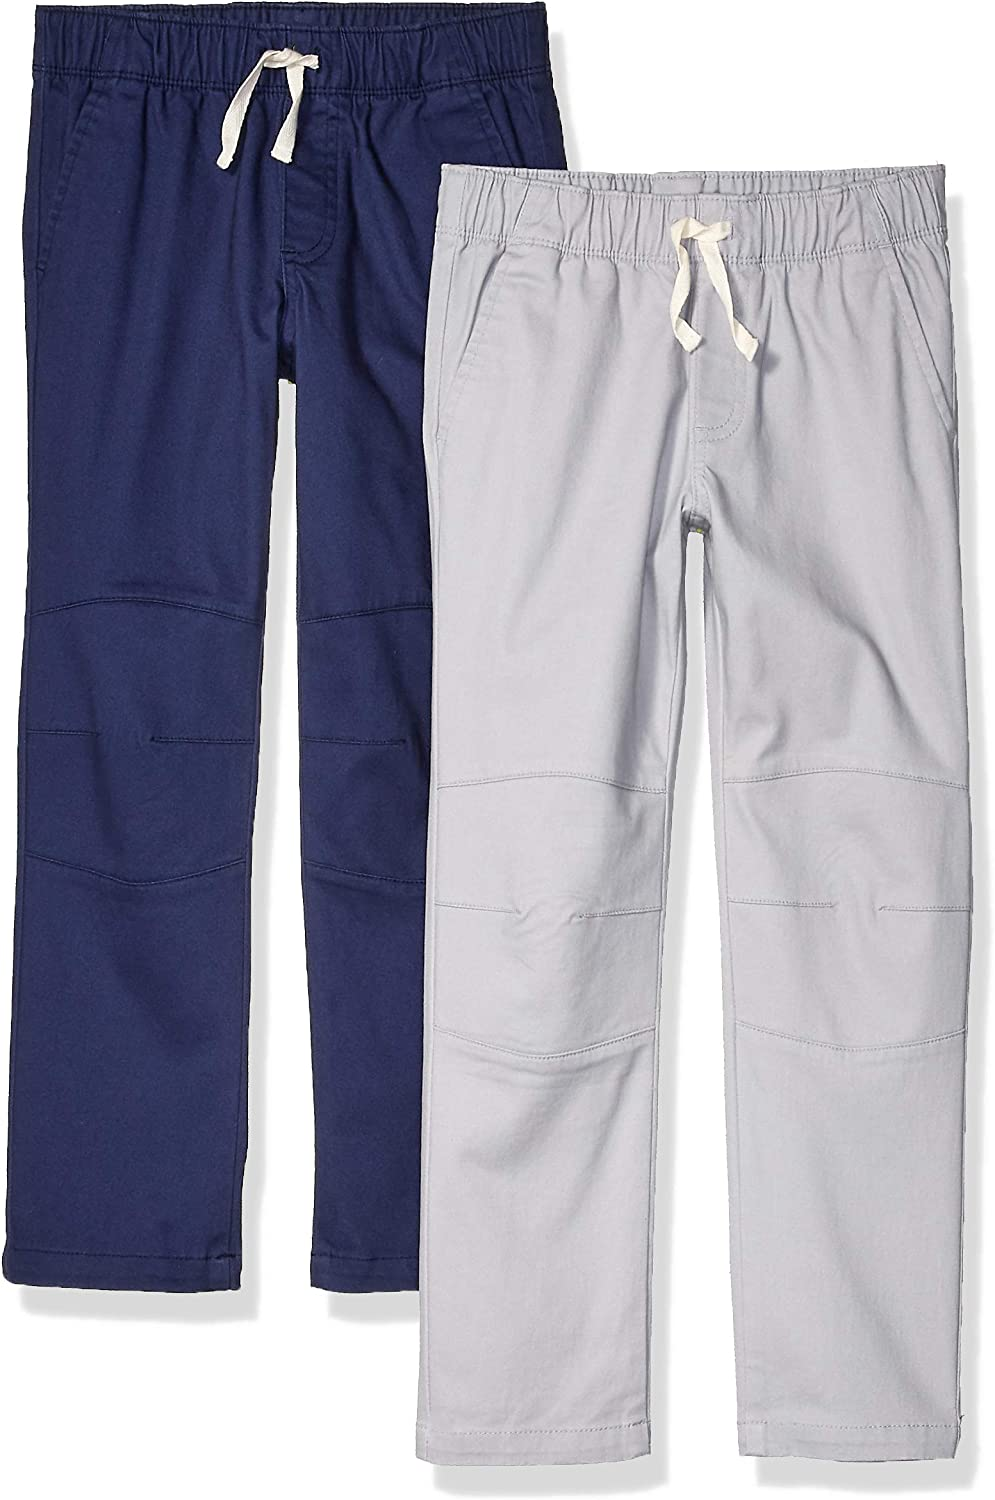 Marchio Spotted Zebra 2-Pack Woven Pull-on Pants Bambino